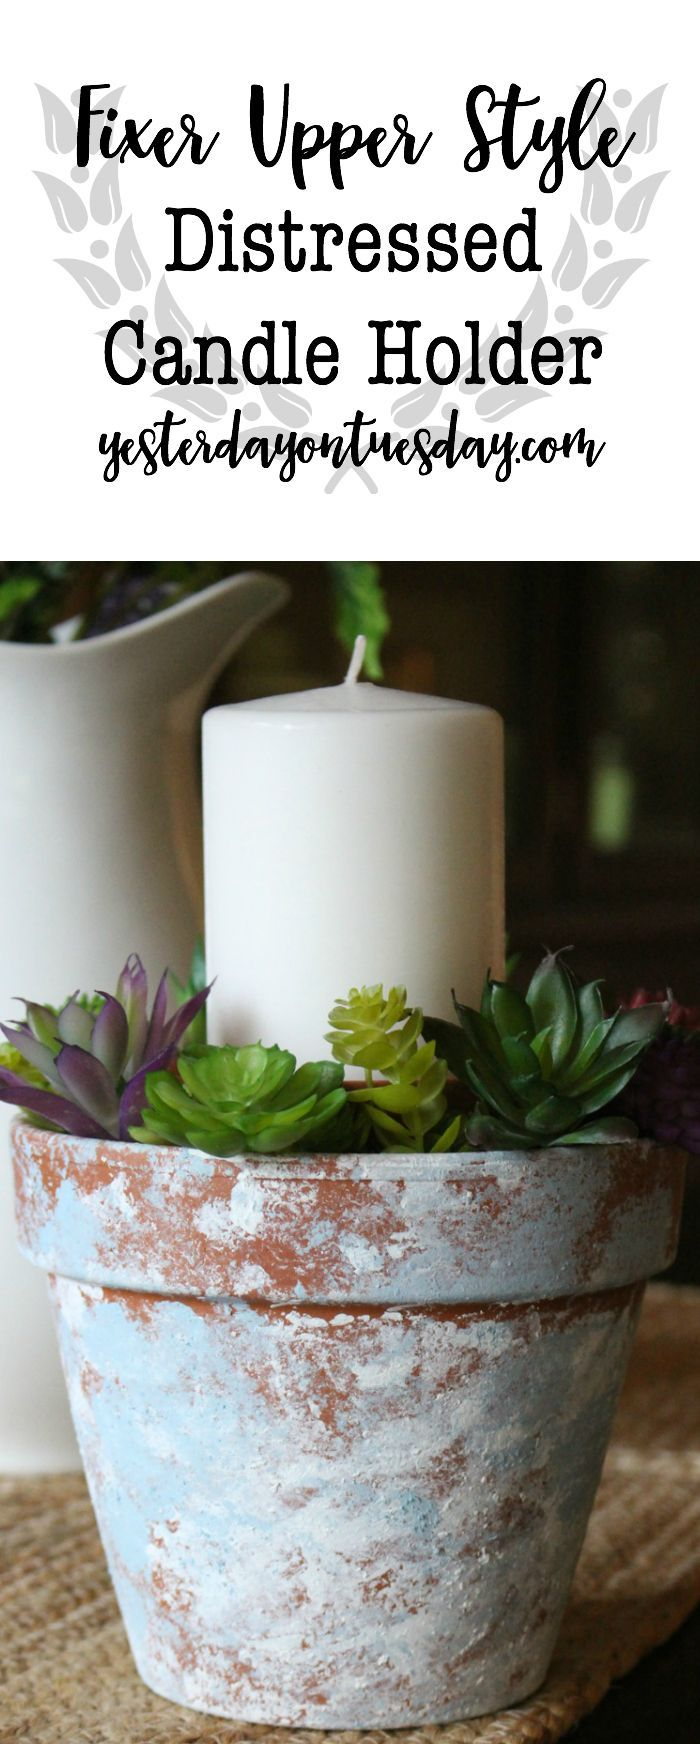 Diy Crafts Modern Farmhouse Candle Holder Add Some Modern Farmhouse Charm With This Simple Diyall Net Home Of Diy Craft Ideas Inspiration Diy Projects Craft Ideas How